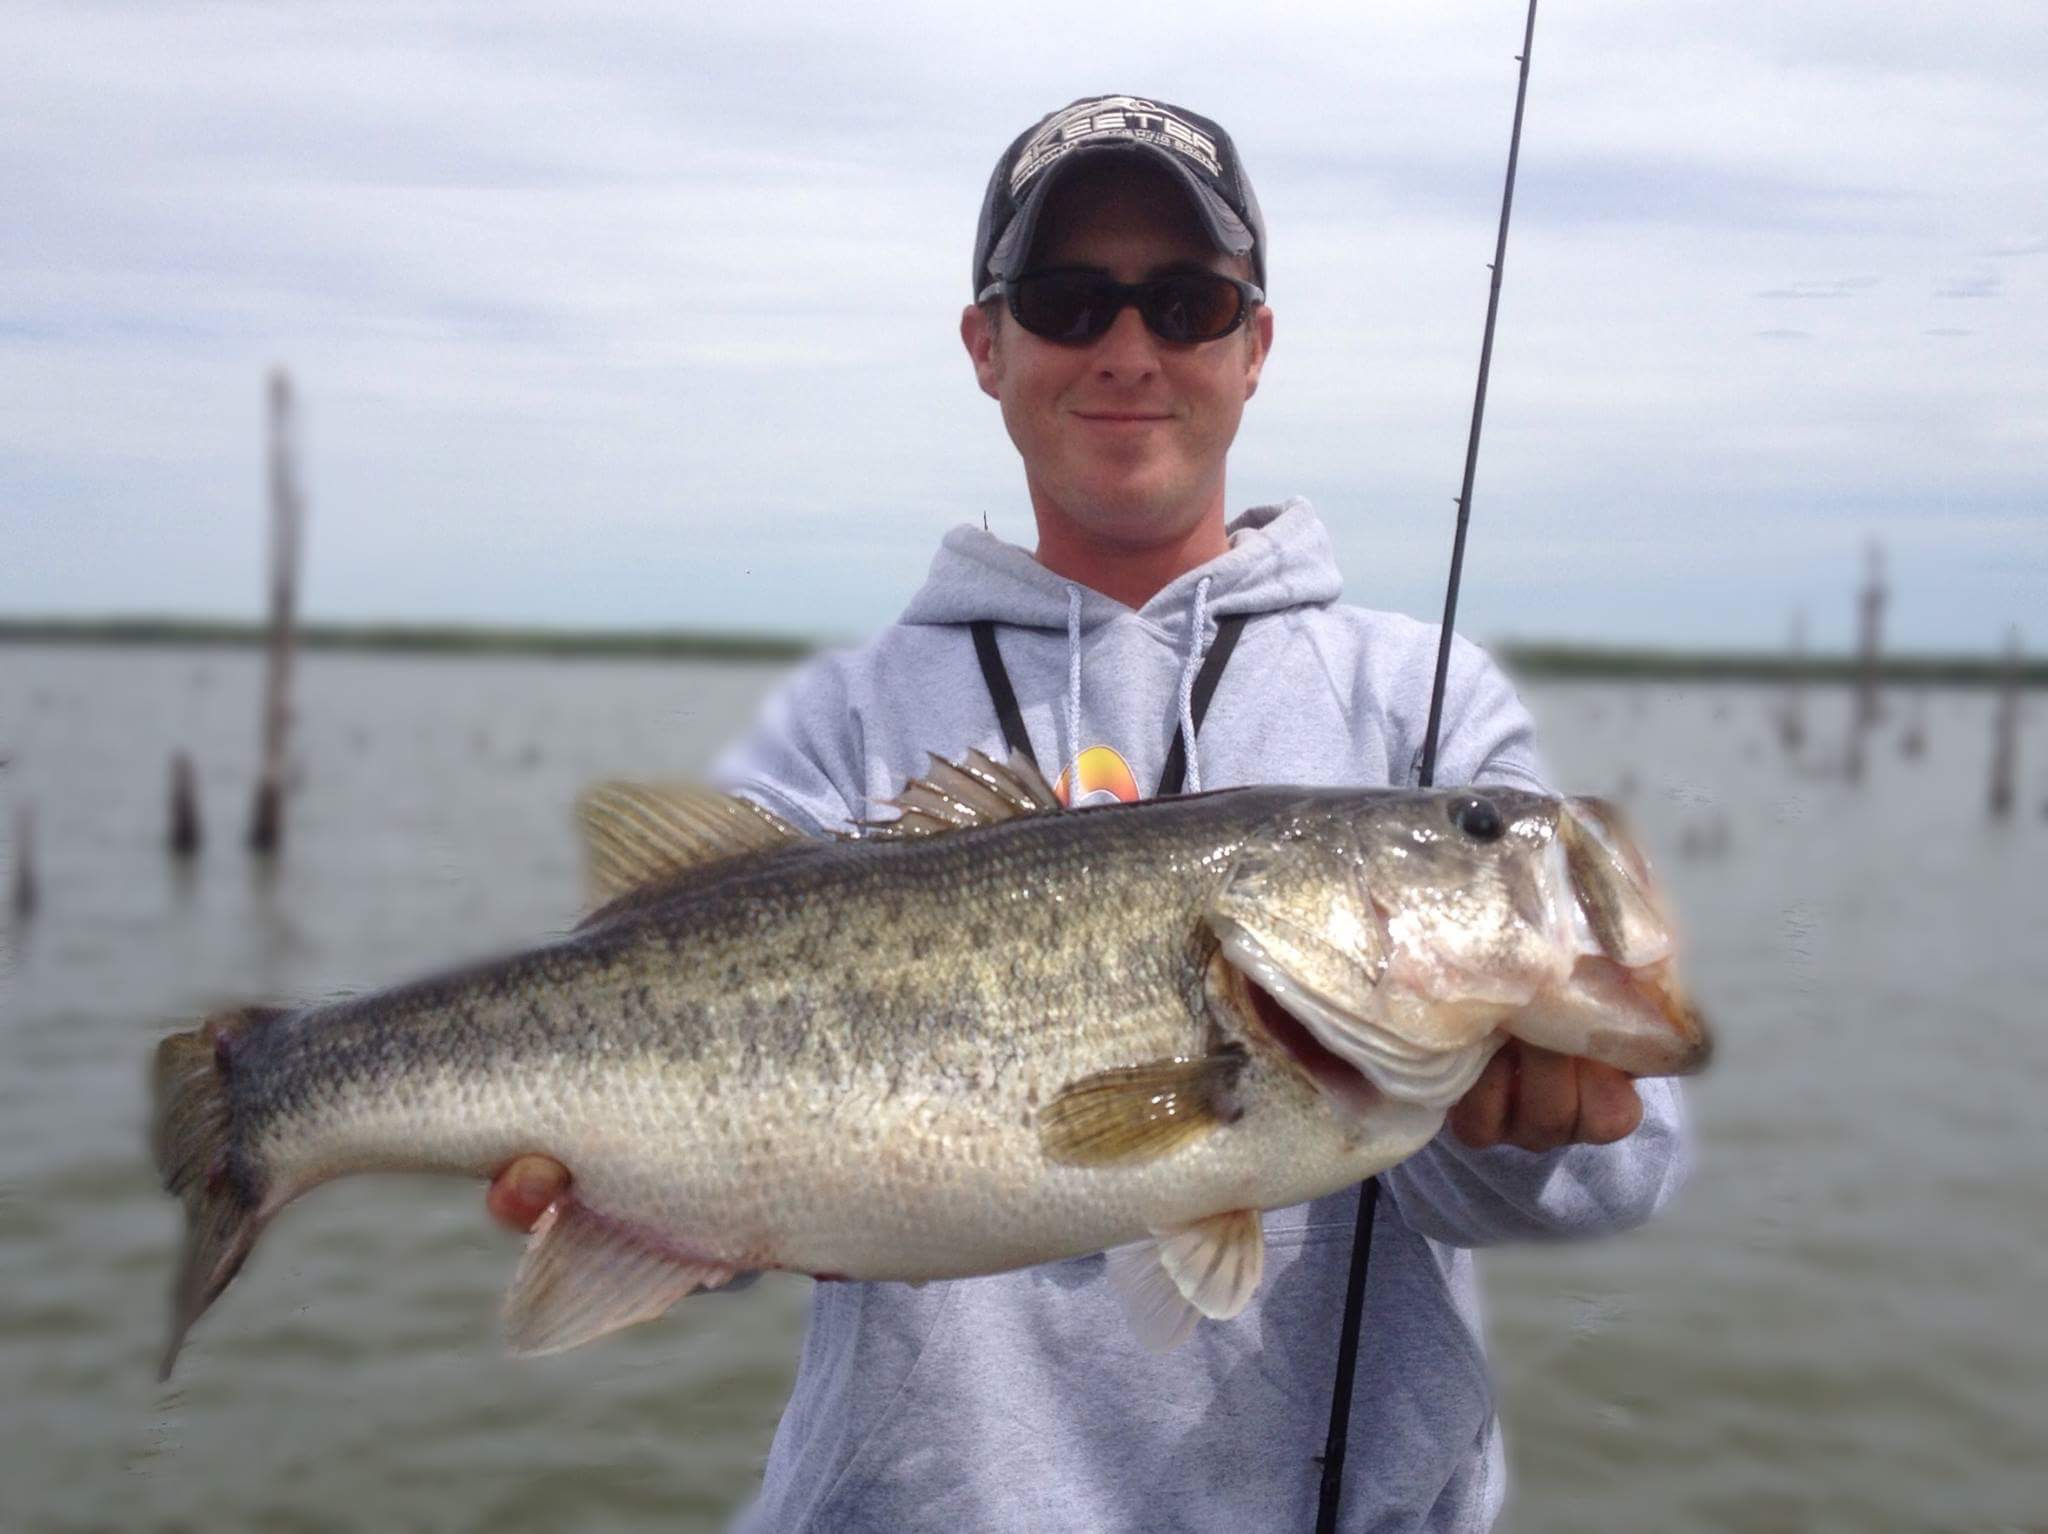 Lake fork report dec 30 lake fork guide andrew grills for Lake fork texas fishing report